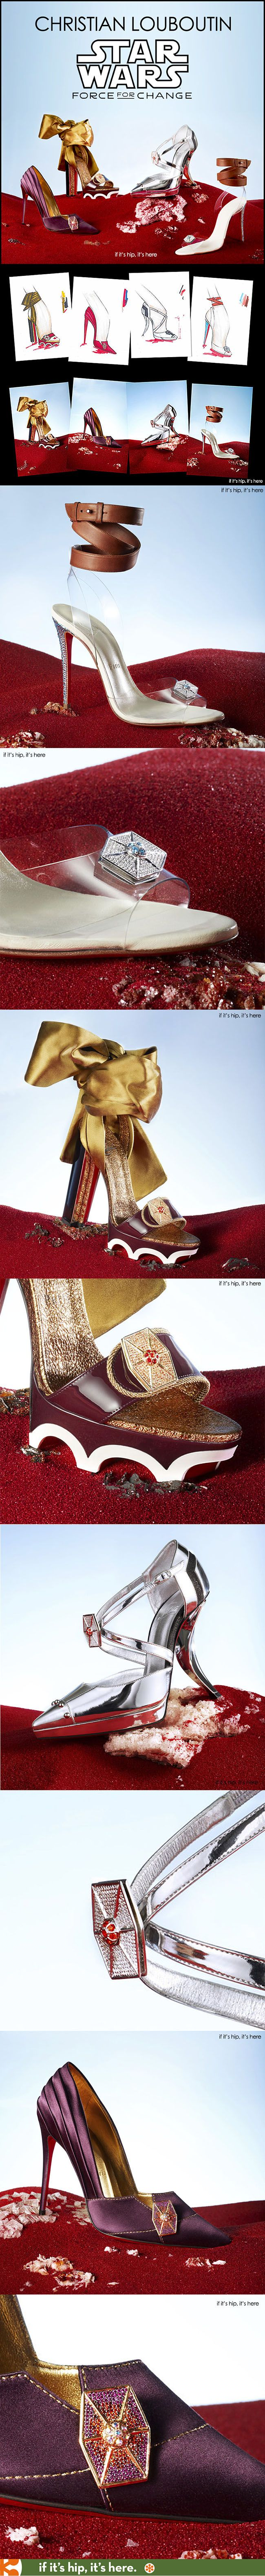 39dcb2086fc Louboutin Star Wars Shoes Benefit Starlight Foundation | Shoes Shoes ...